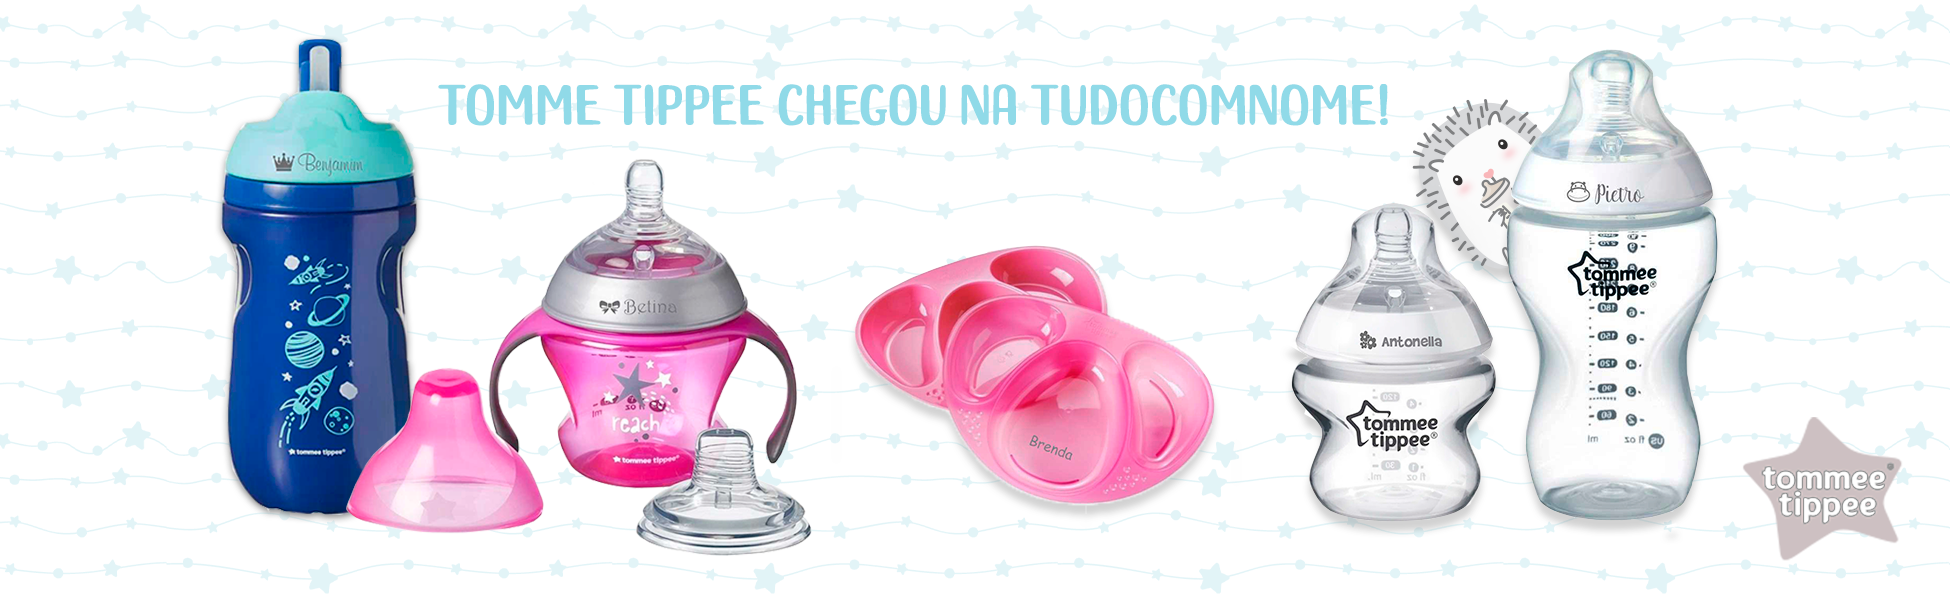 Banner tomme tippee